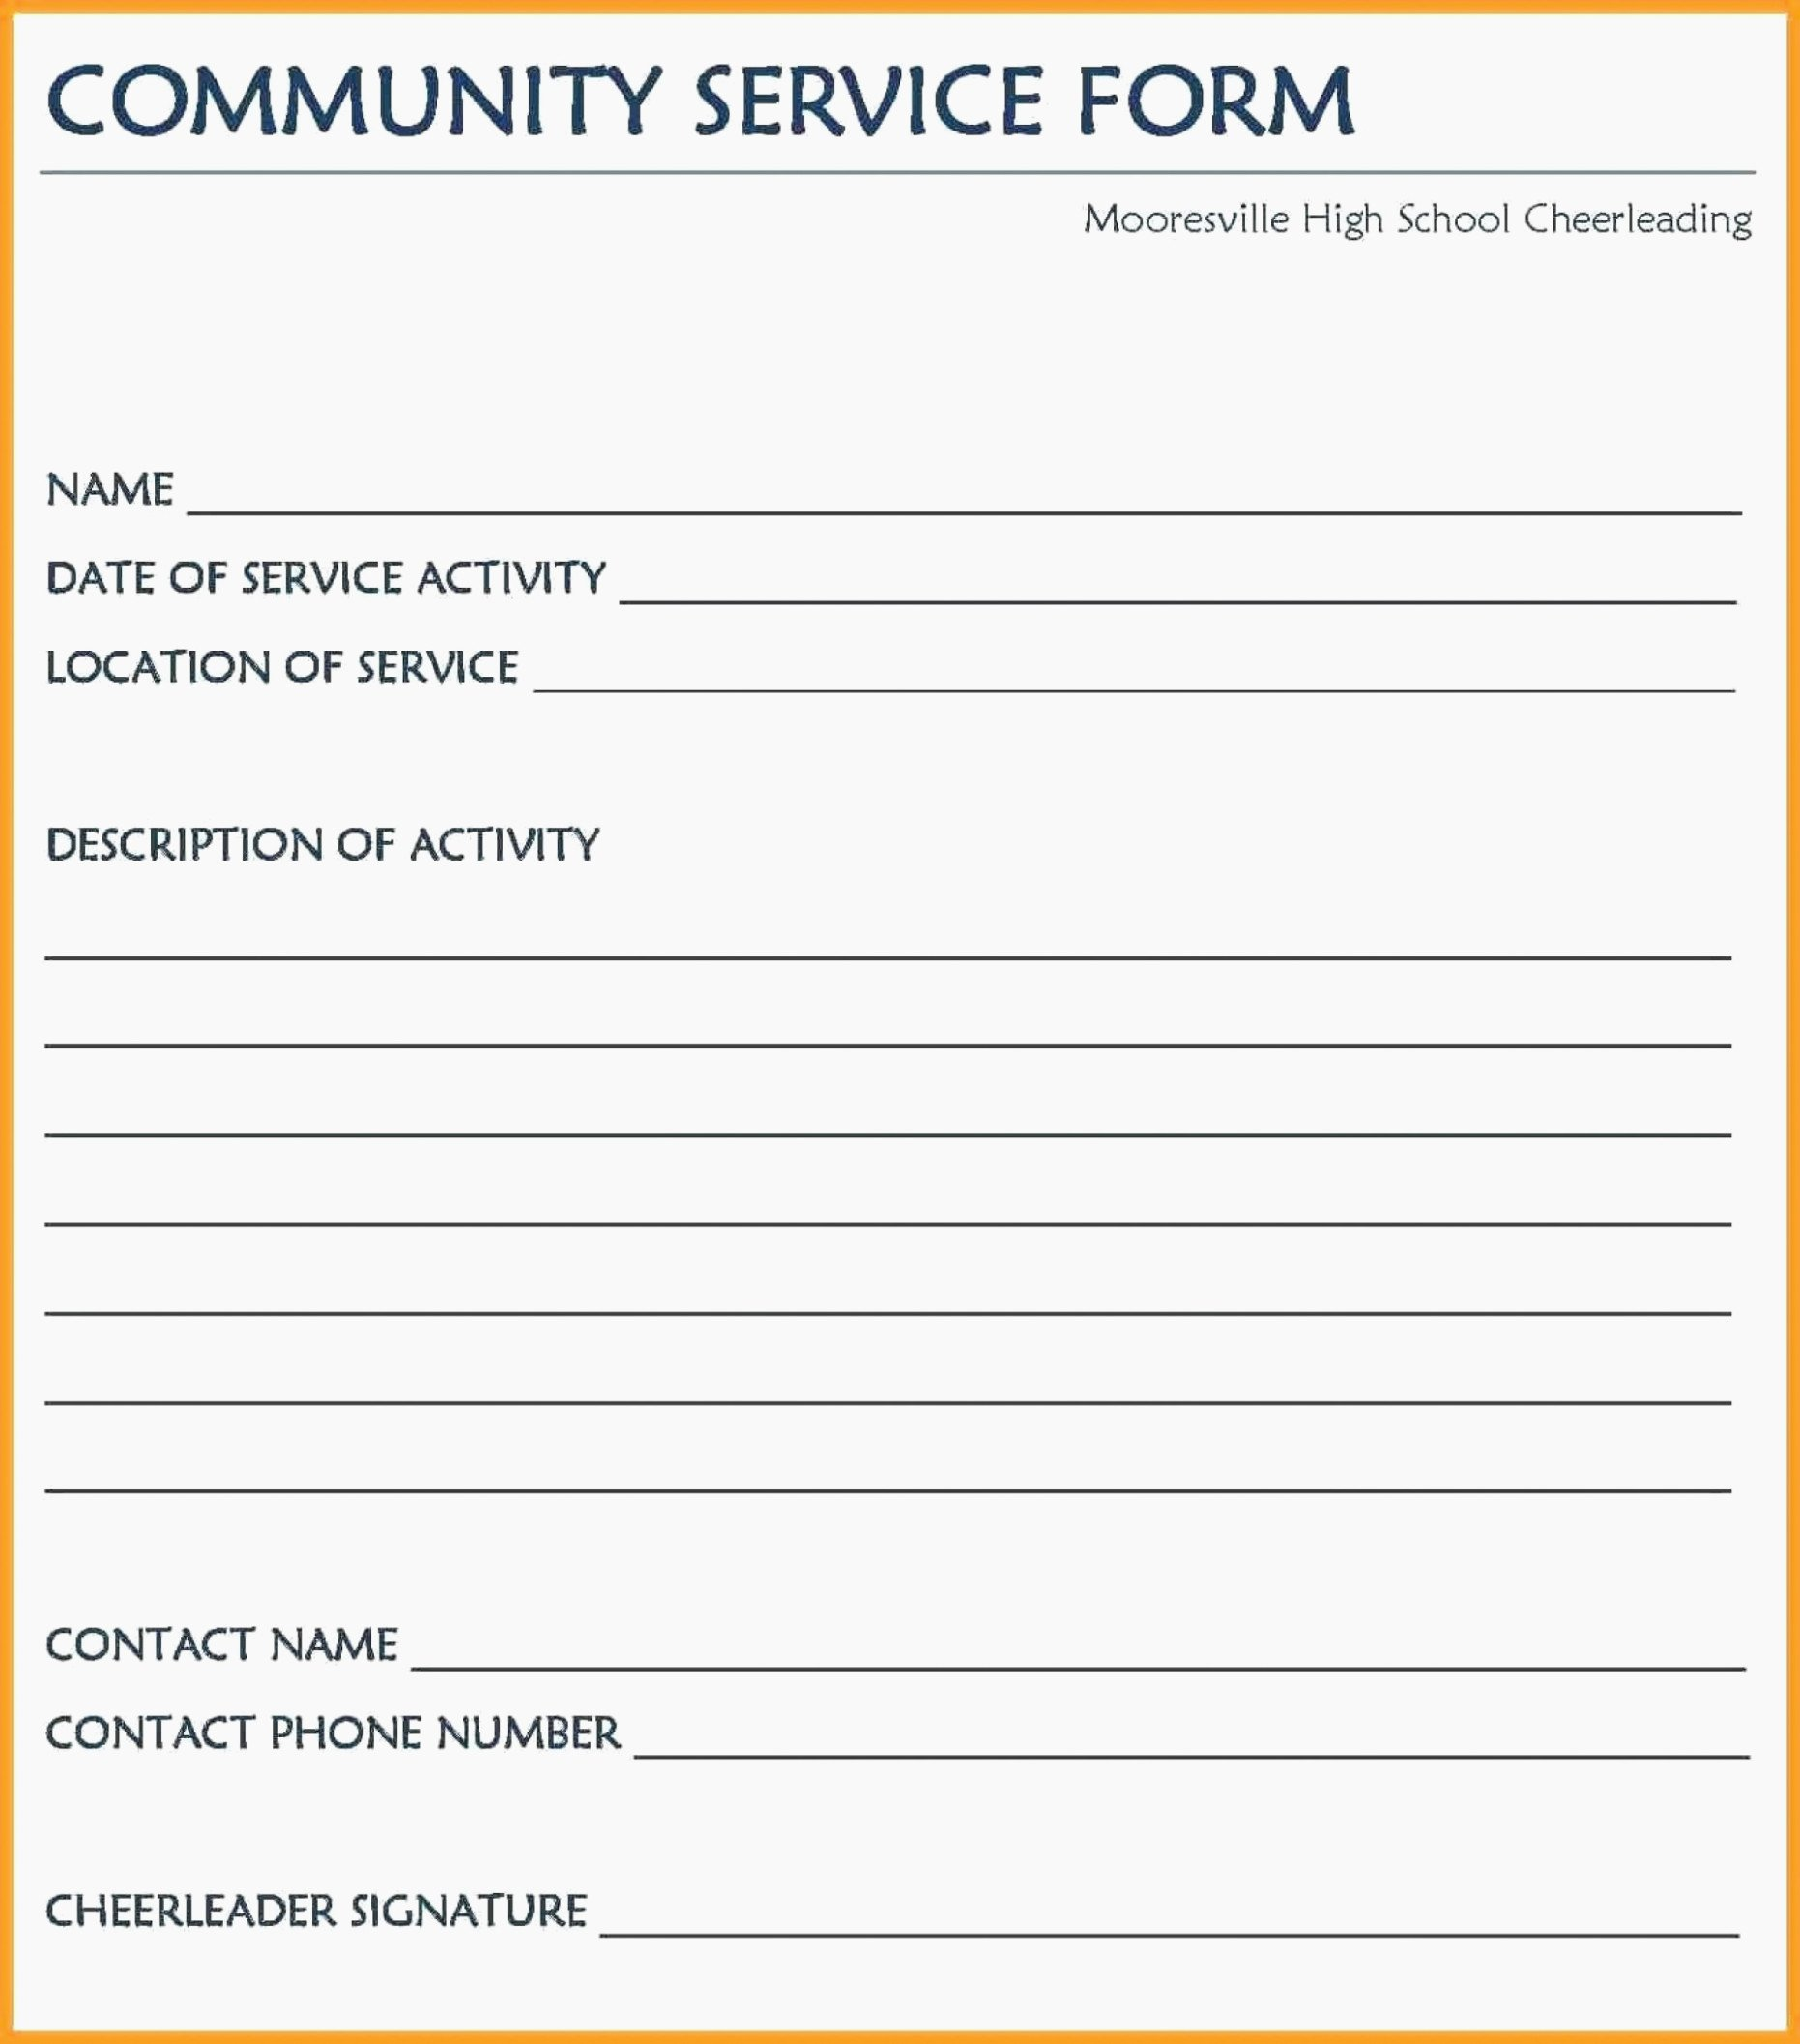 Community Service Hours form Template Lovely Ten Easy Ways to